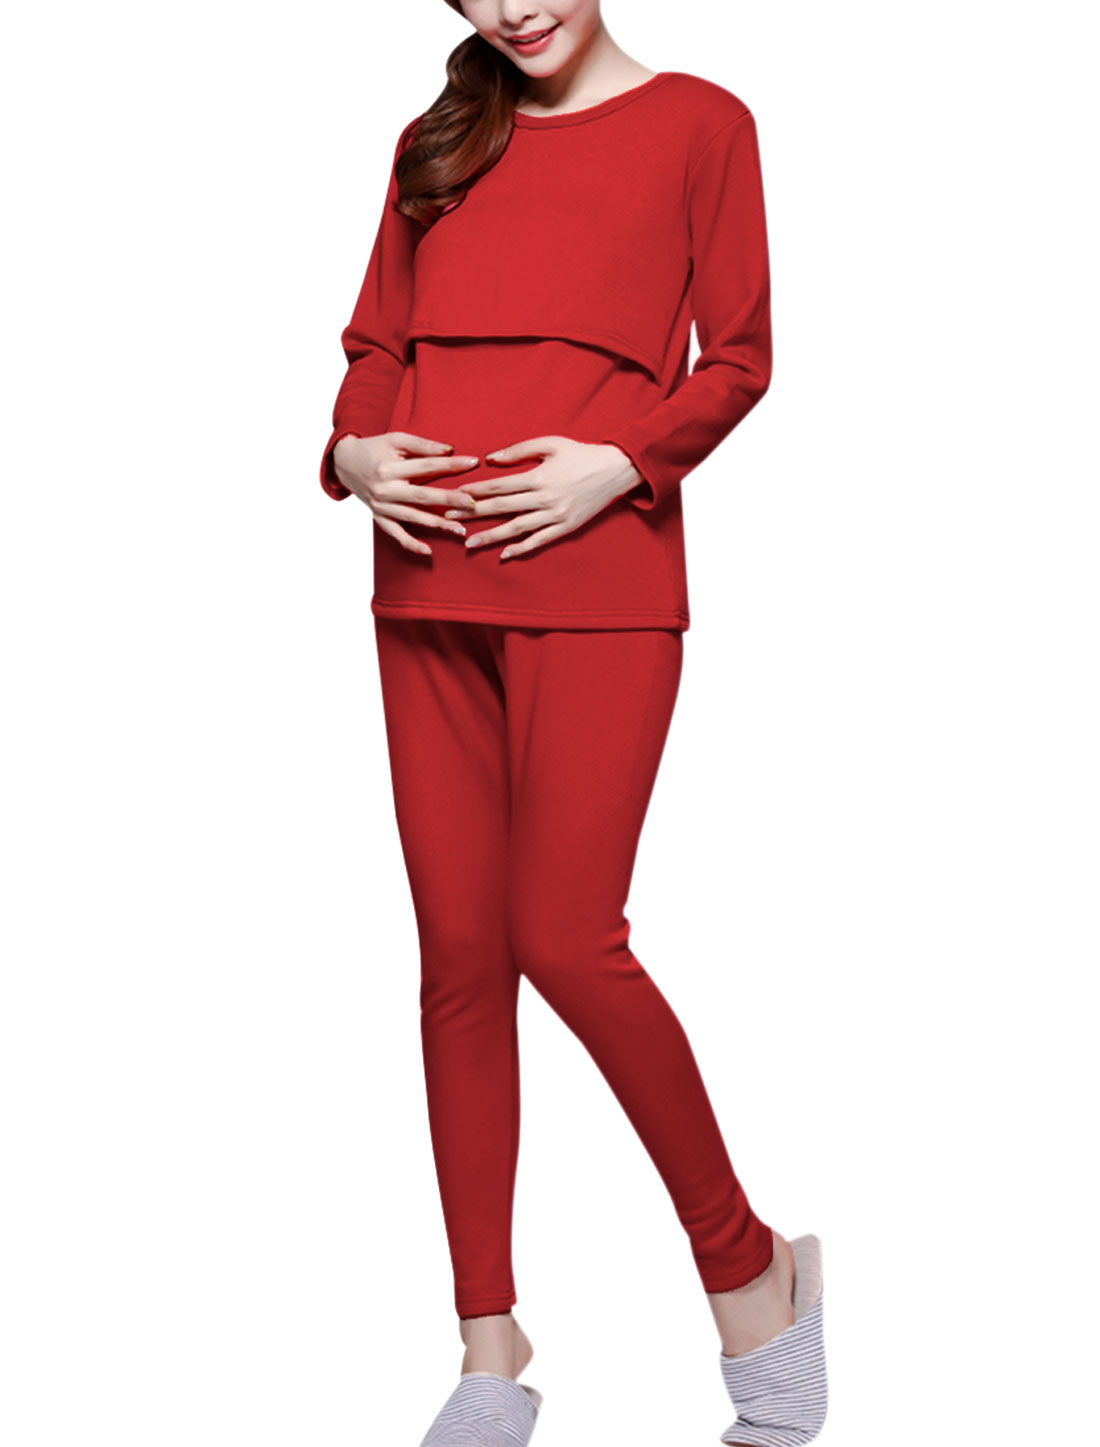 Maternity Splicing Adjustable Strap Fleece Lined Pajama Sleepwear Set Red S